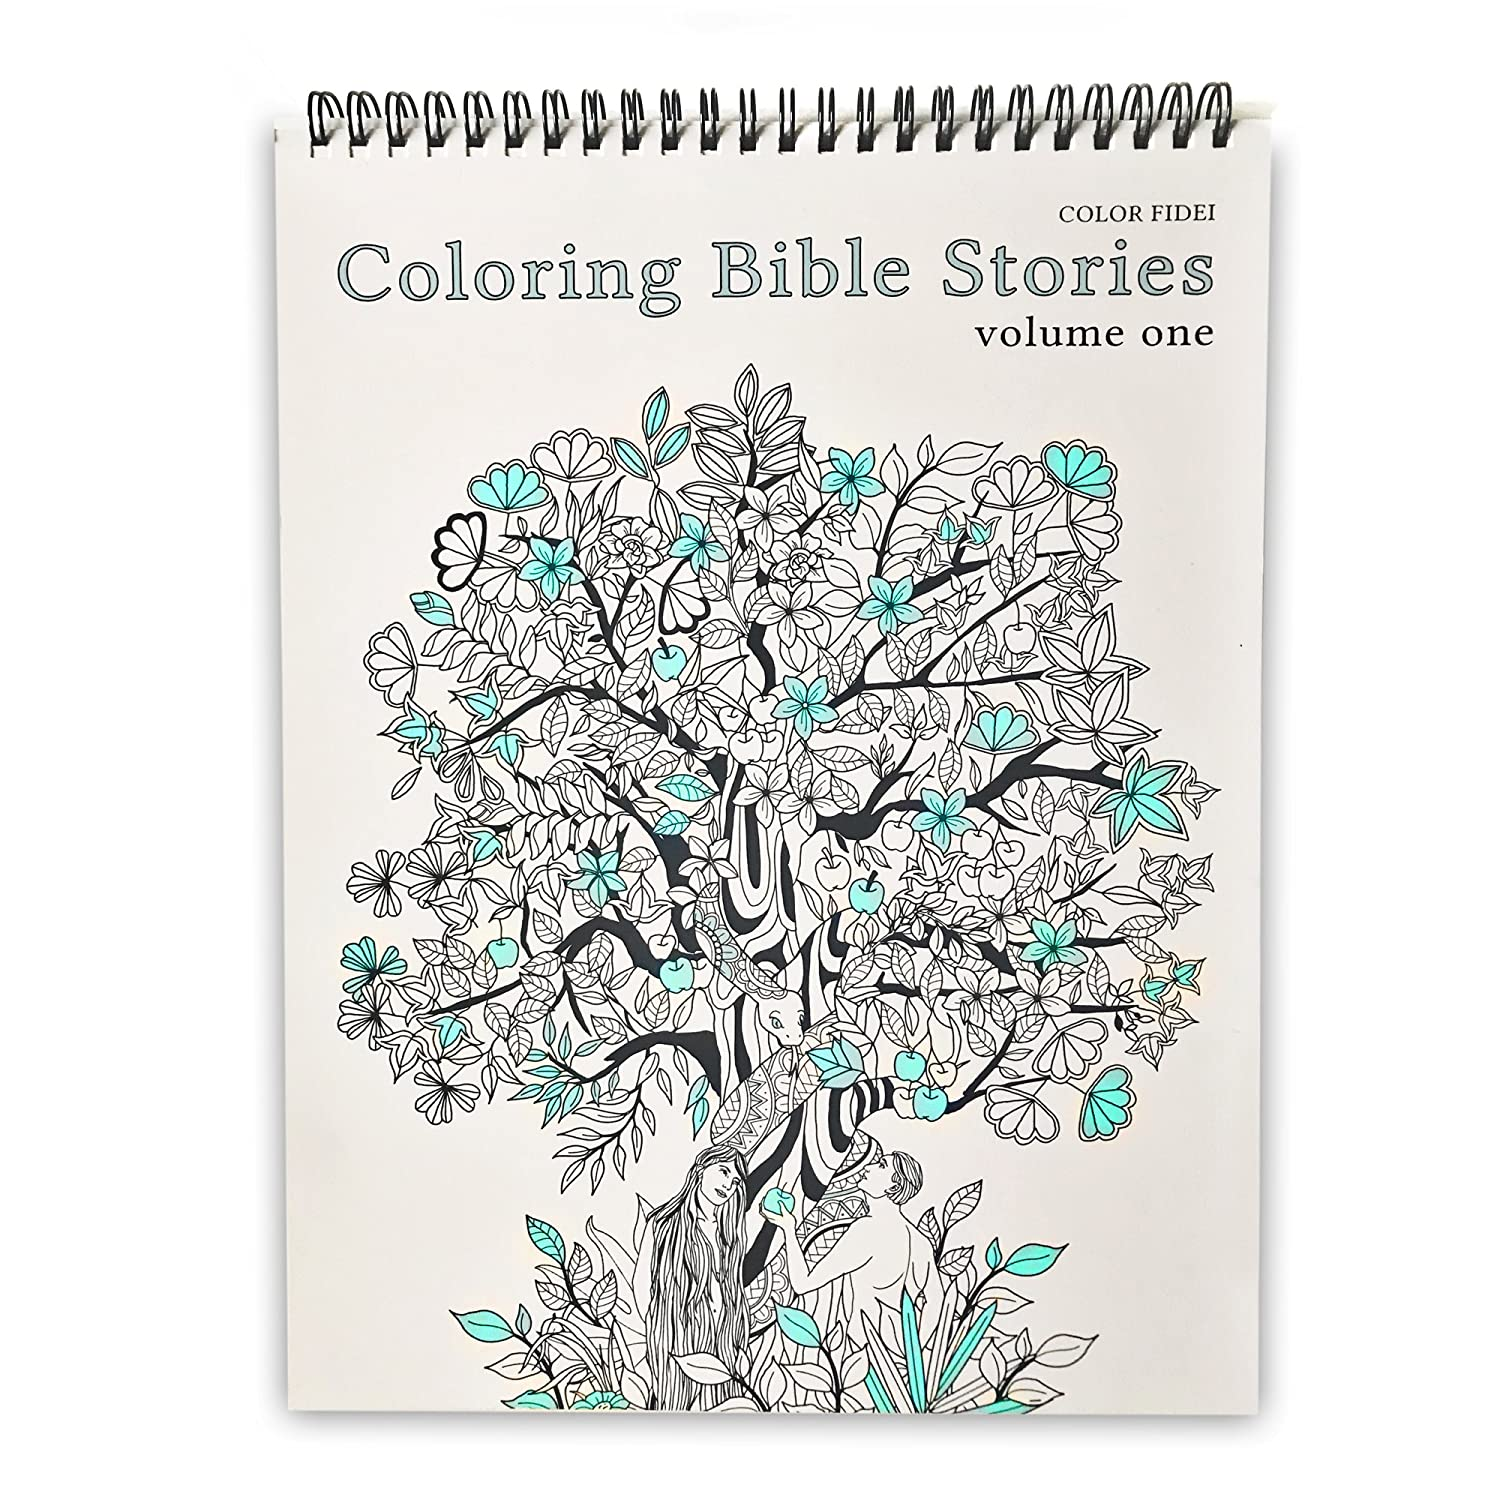 Coloring Bible Stories Volume 1 - Religious Themed Adult Coloring Book - with 50 Original Drawings, Pen/Marker Friendly Paper, Eco-Friendly, Top Spiral-Bound, and Blotter Page